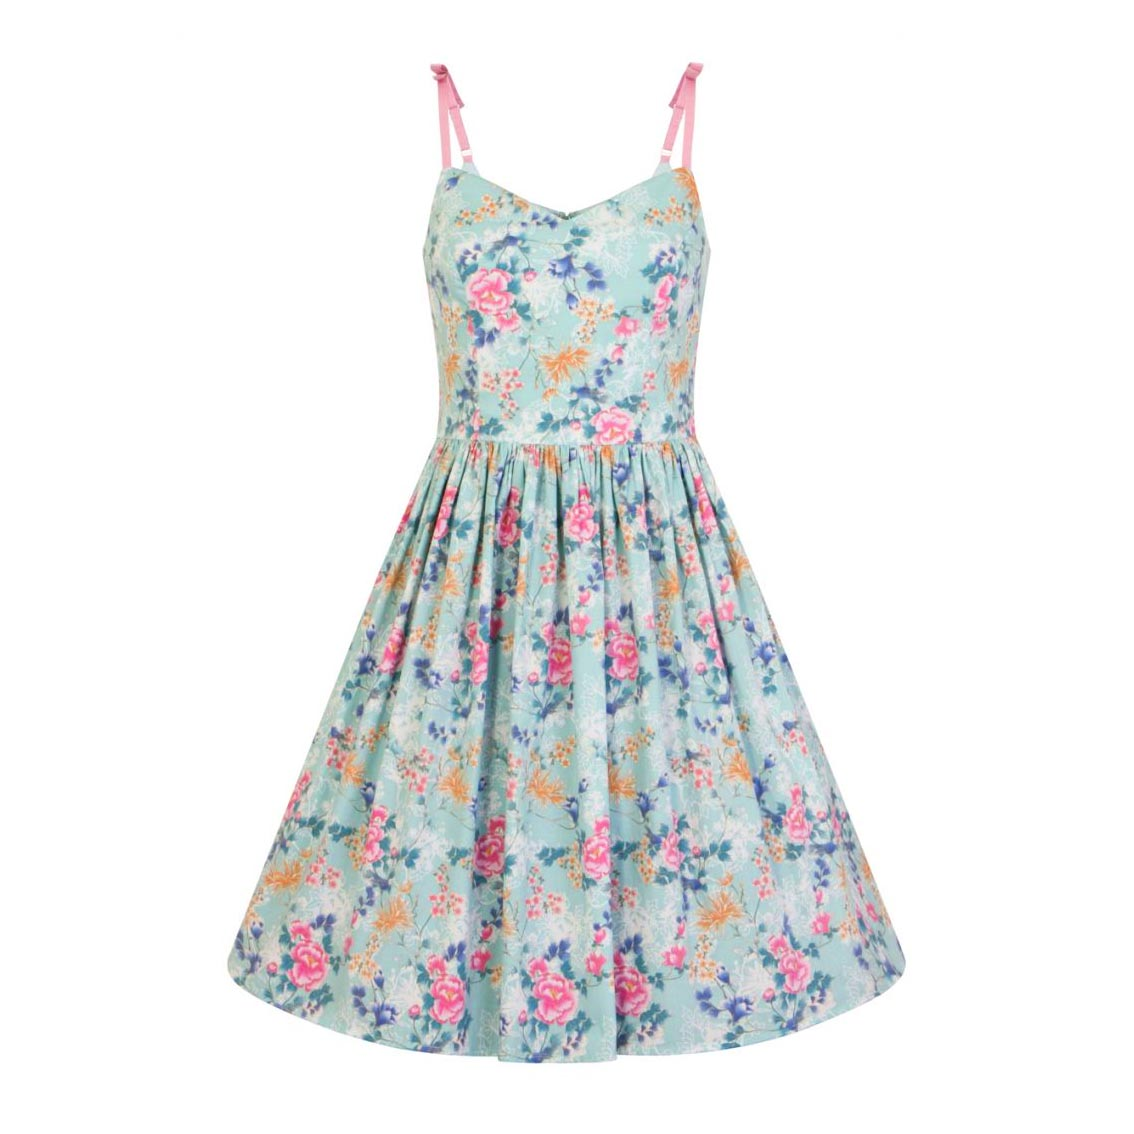 Hell-Bunny-50s-Mid-Length-Dress-Vintage-Blue-Pink-SAKURA-Flowers-Roses-All-Sizes thumbnail 3